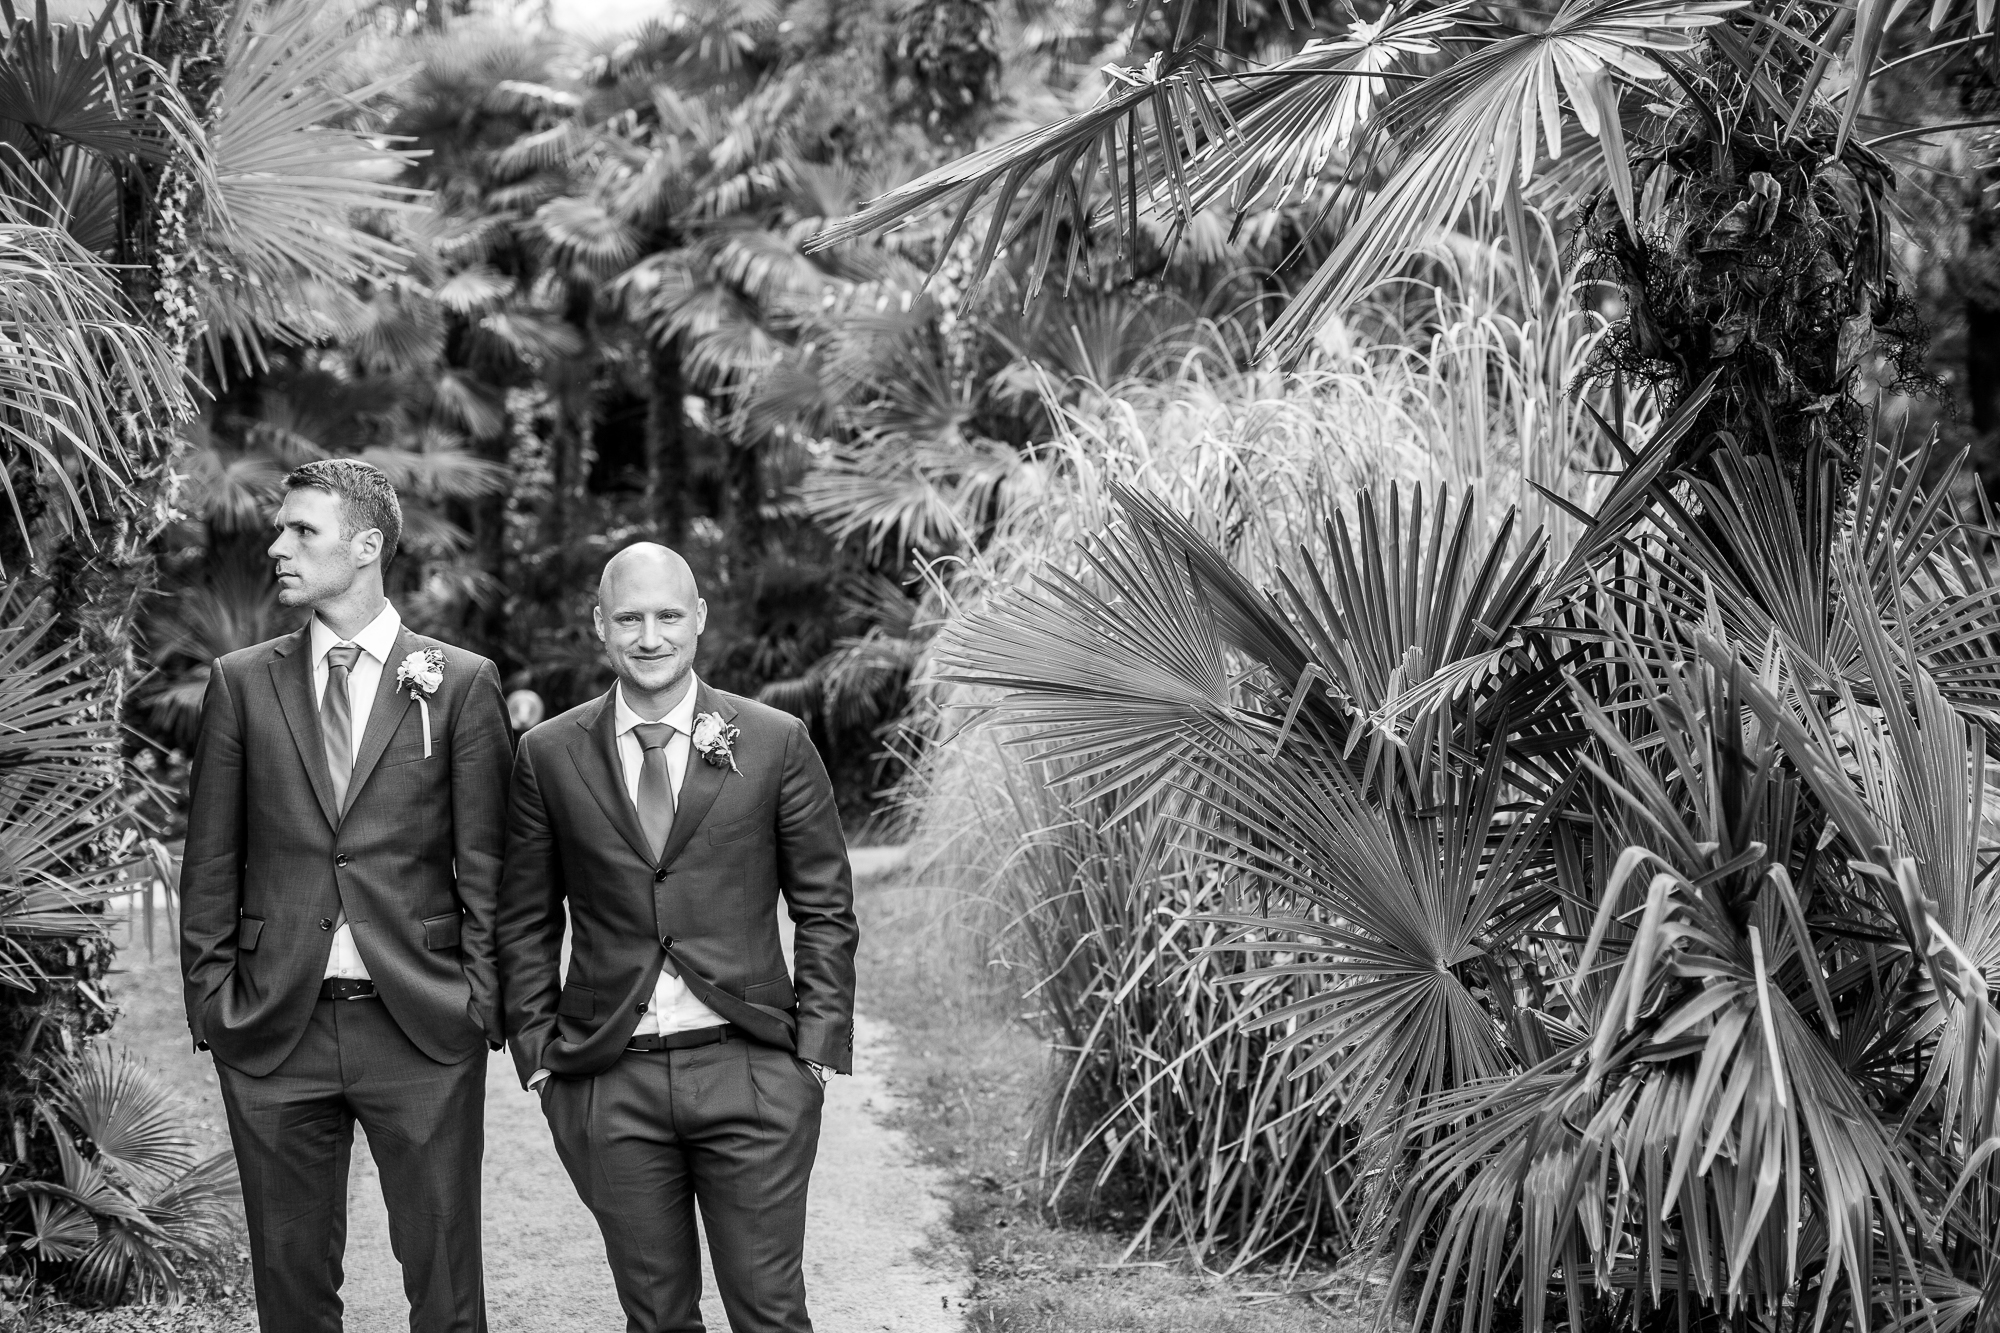 Hochzeit, Groom, best man, Anzug, suit, blacktie, garten, hotel, happy, married, wedding, photography,